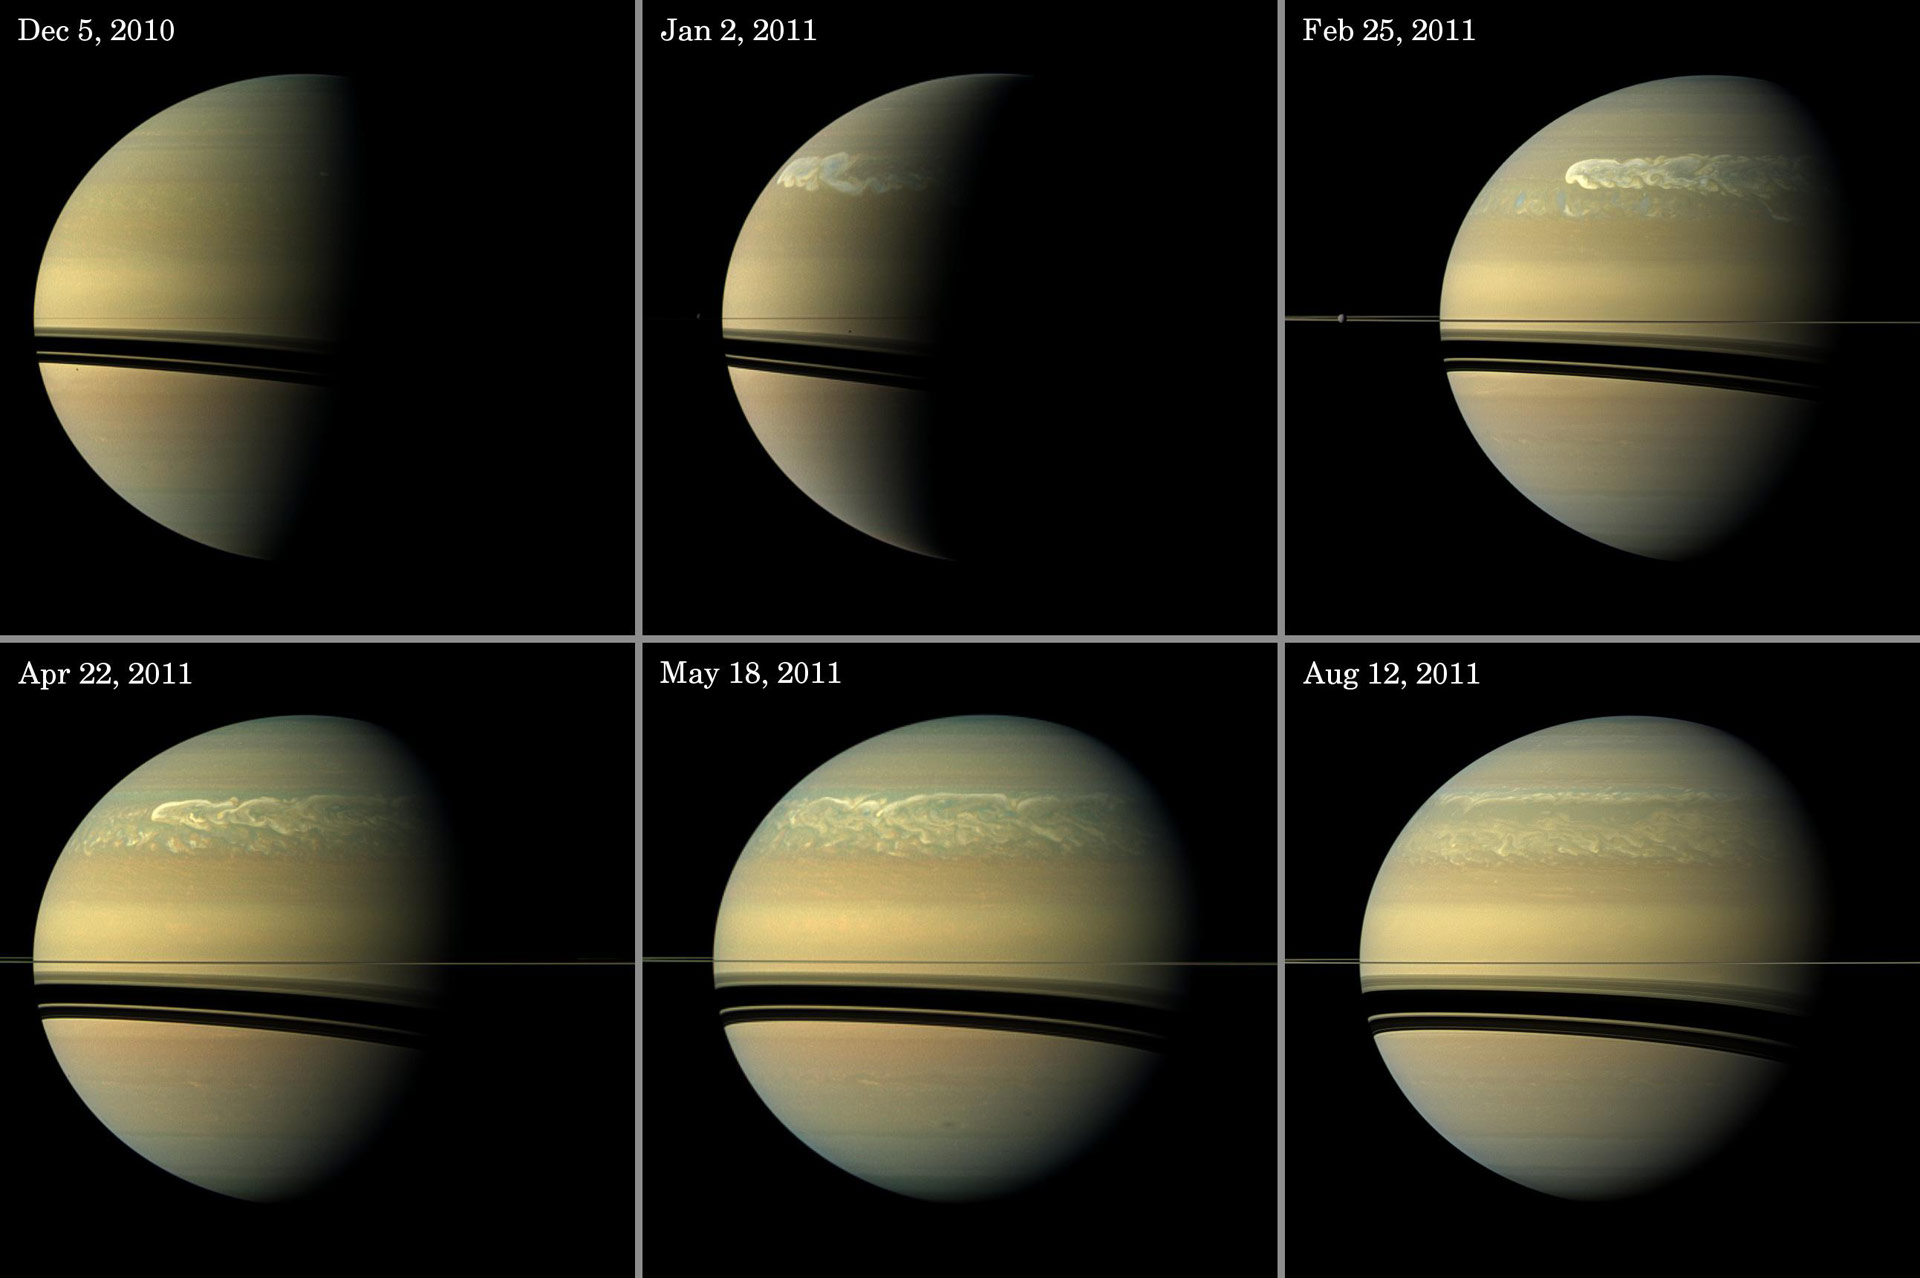 Real Pictures of Saturn From NASA (page 3) - Pics about space